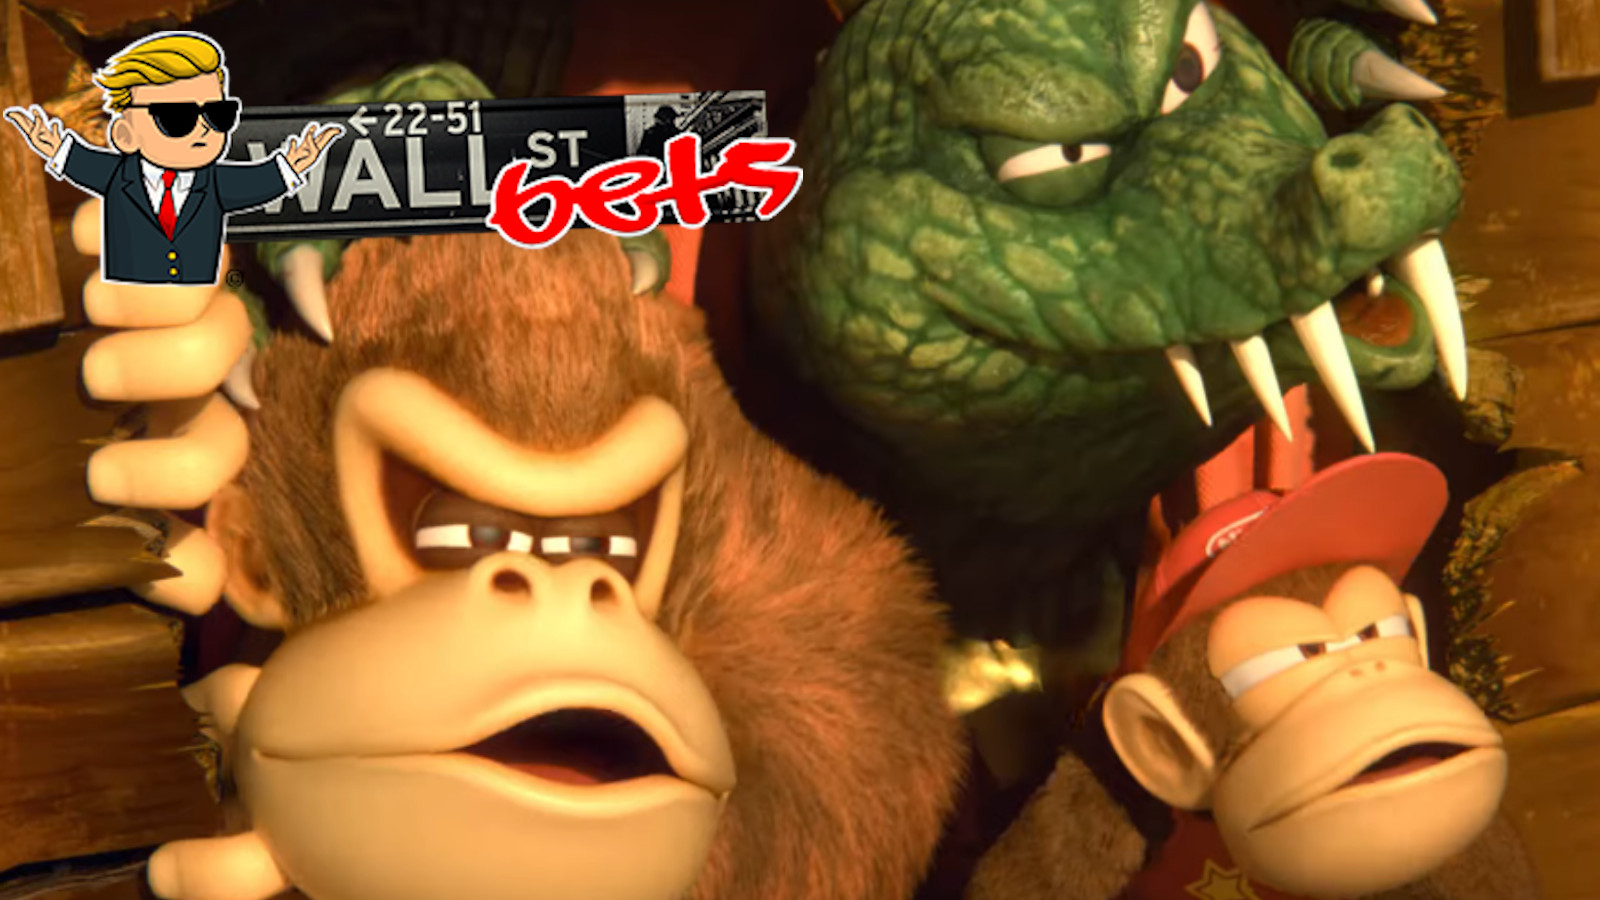 Donkey Kong and Diddy Kong look on suspeciusly